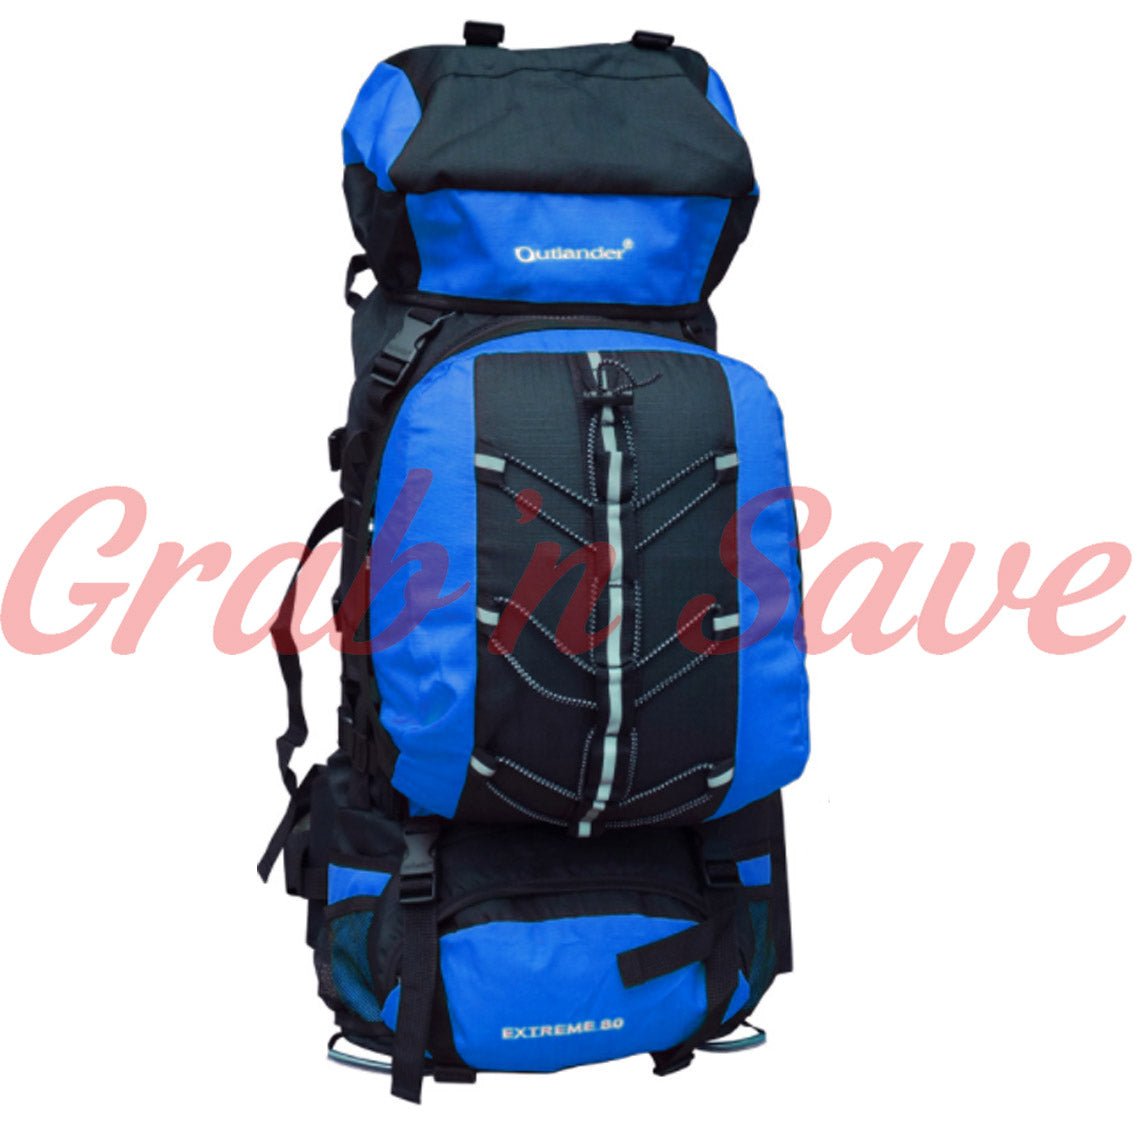 Backpack, Travel Backpack, Hiking Backpack